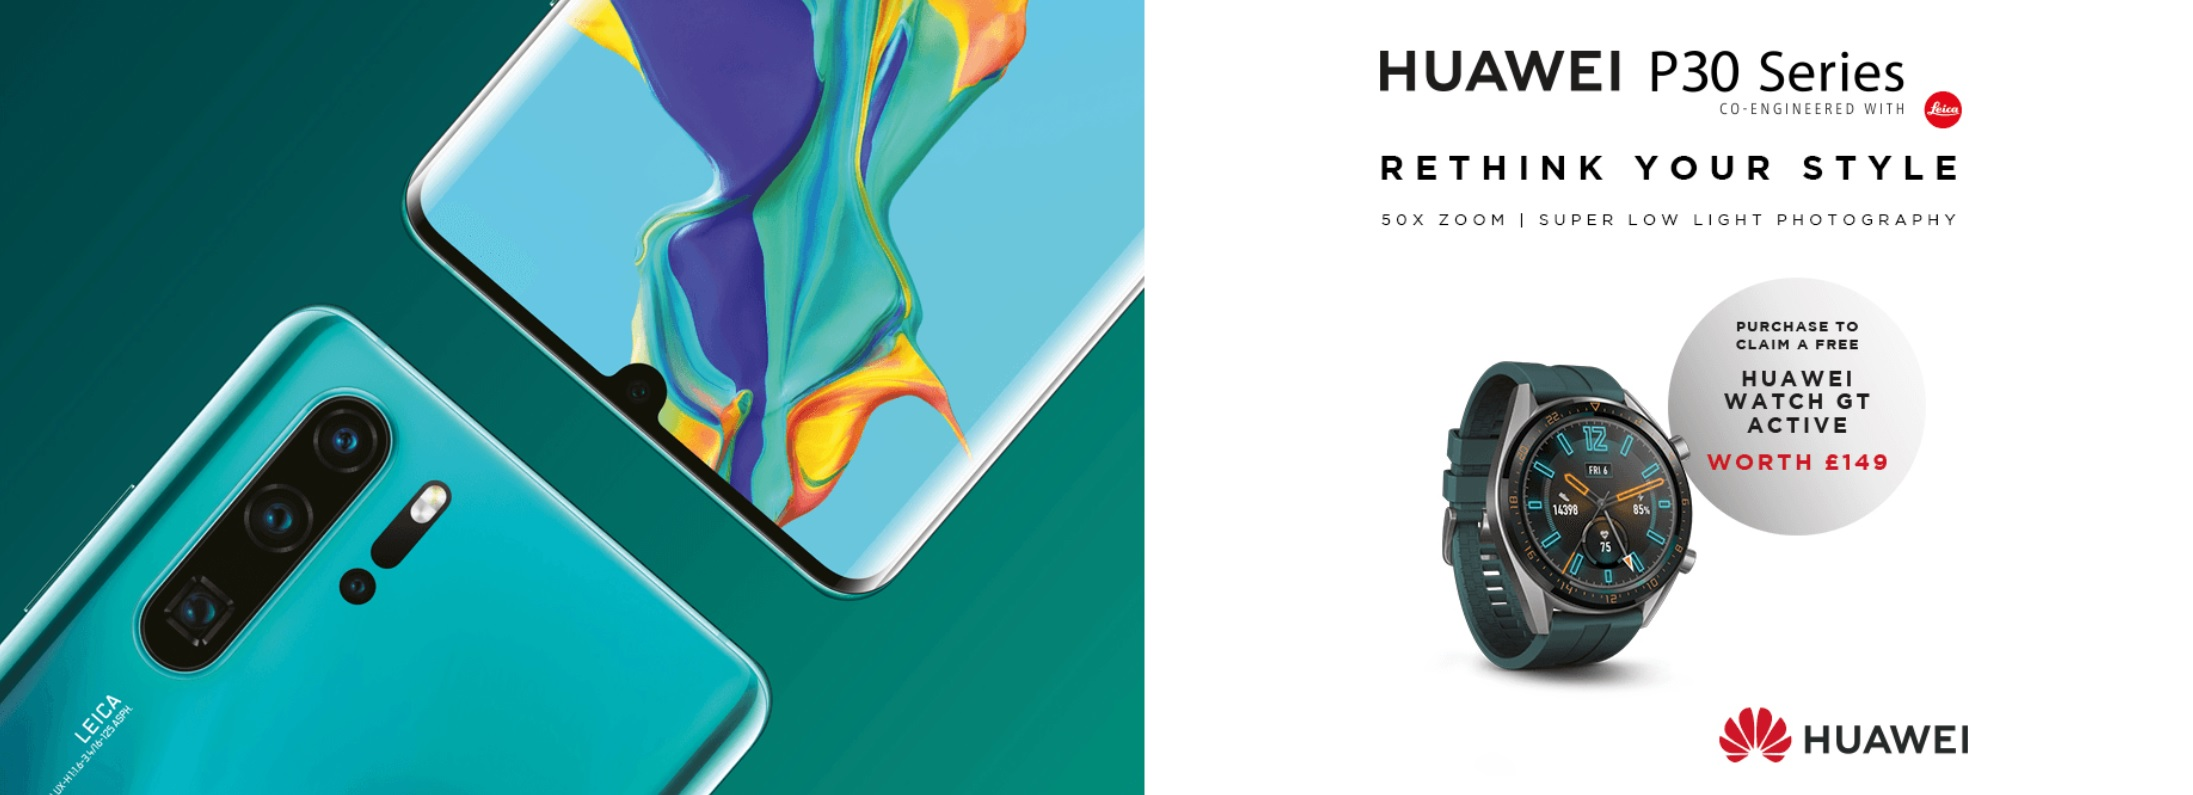 Huawei P30 Pro cheapest deals with Free Watch GT Active